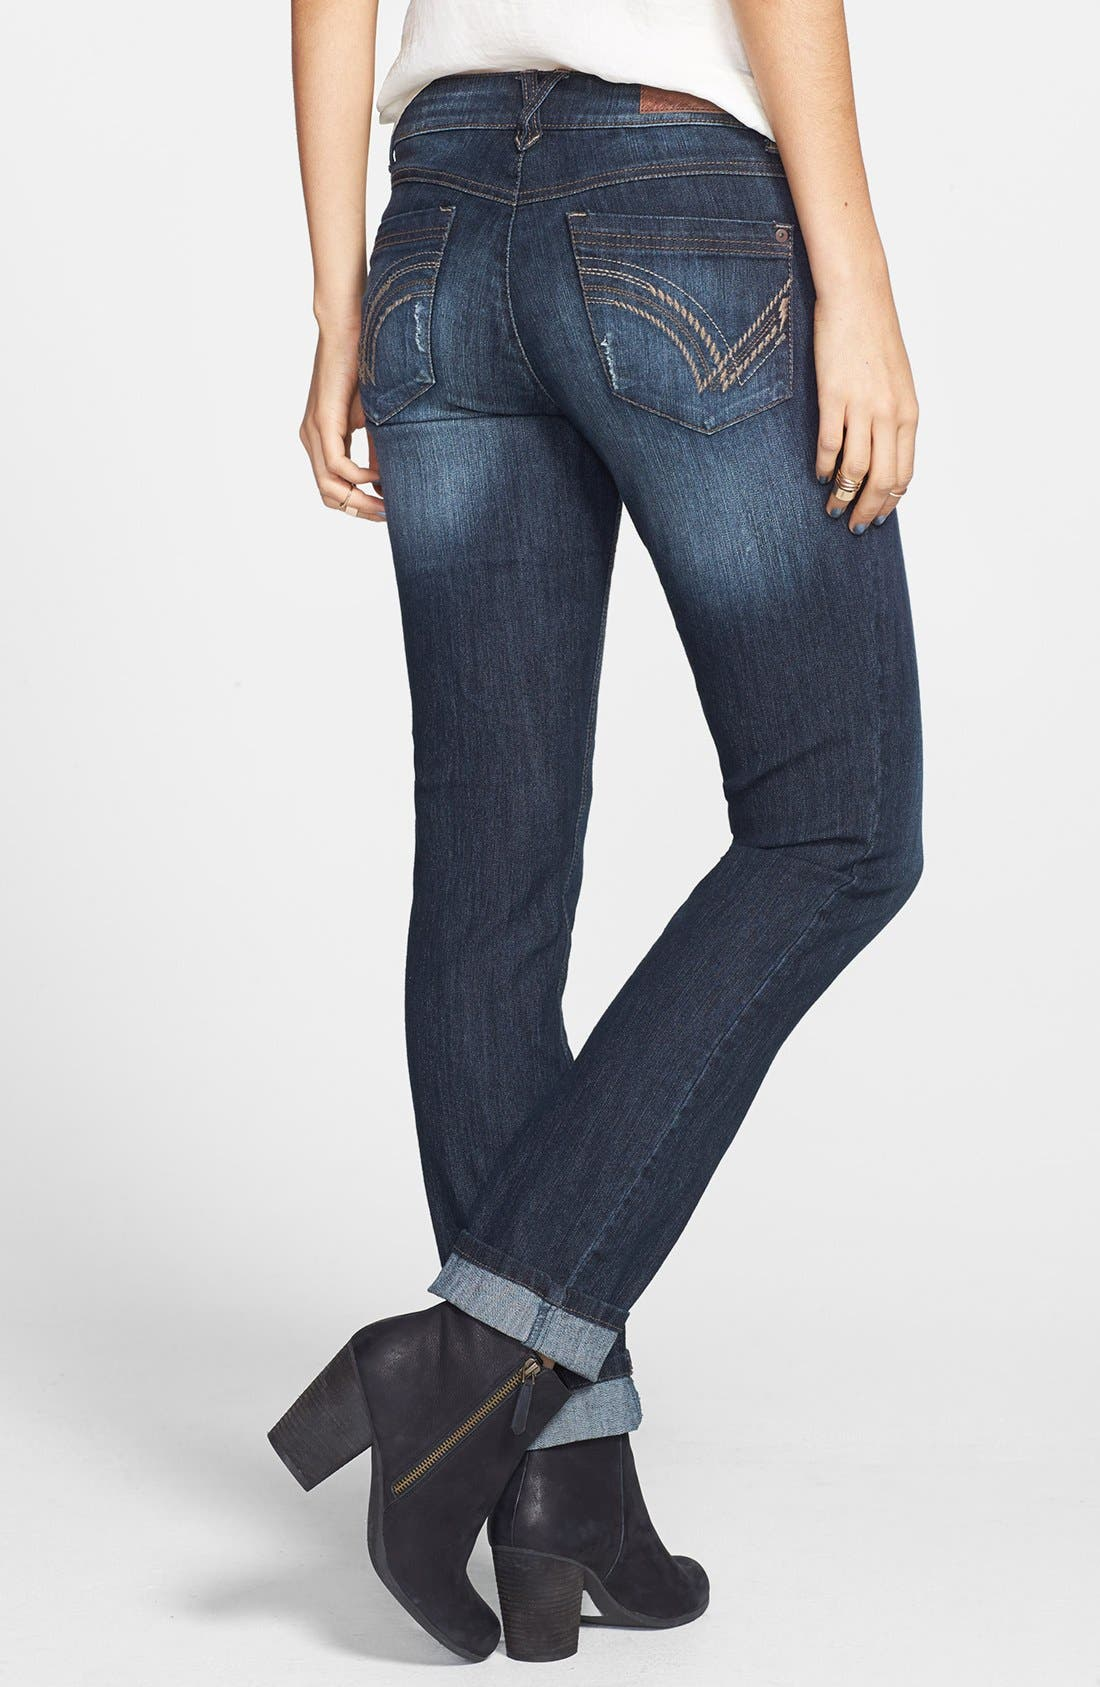 Alternate Image 1 Selected - Jolt Embroidered Pocket Skinny Jeans (Juniors)